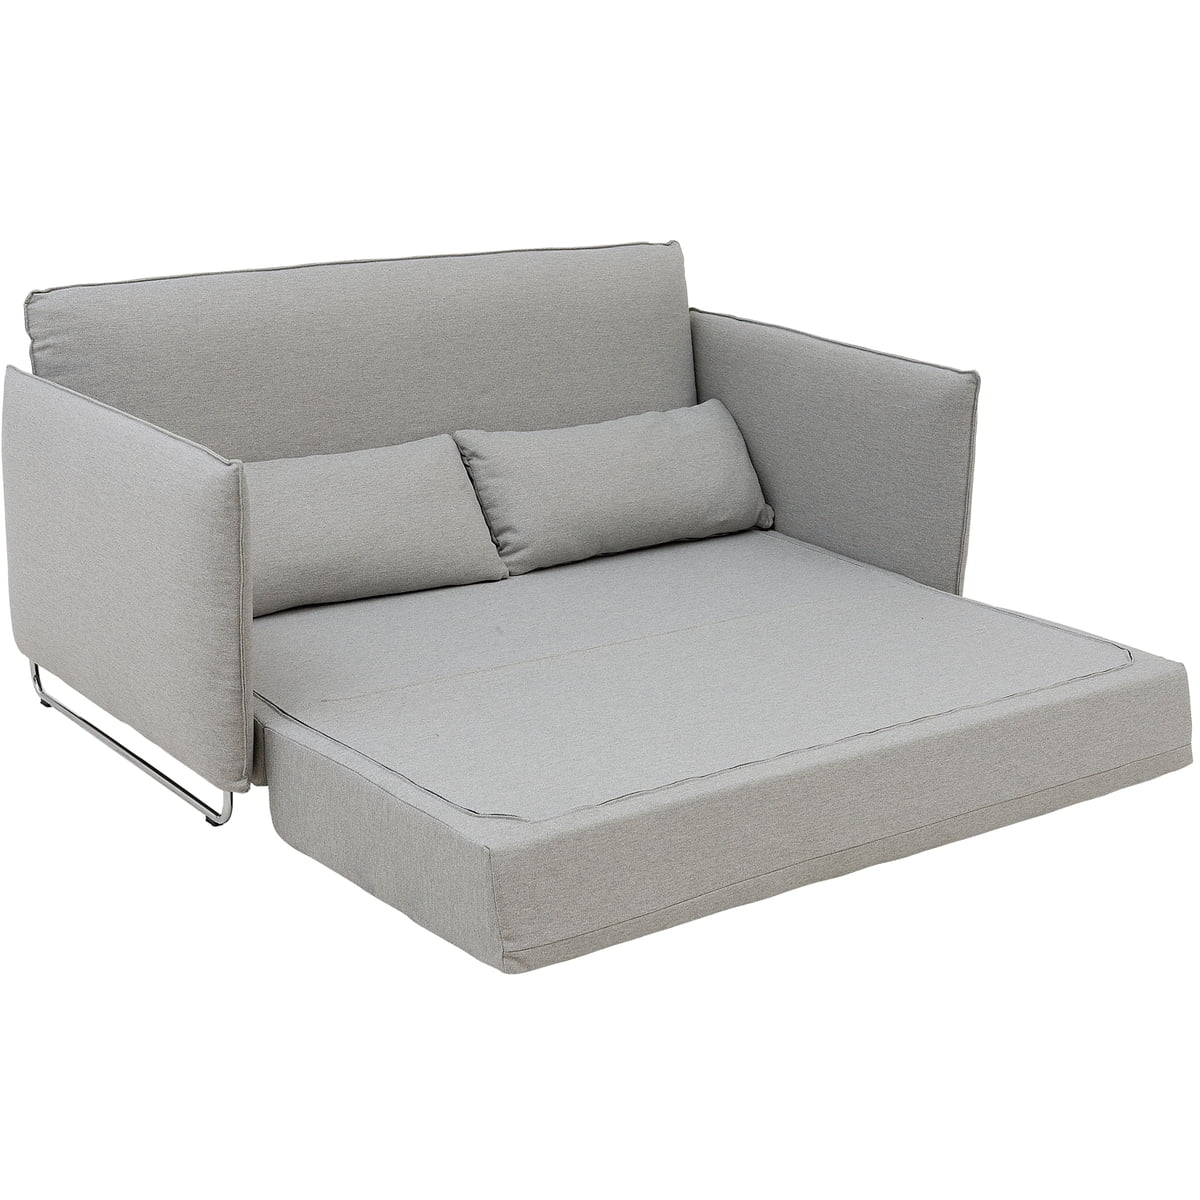 Super Softline Cord Sofa Bed Felt Grey 620 Inzonedesignstudio Interior Chair Design Inzonedesignstudiocom